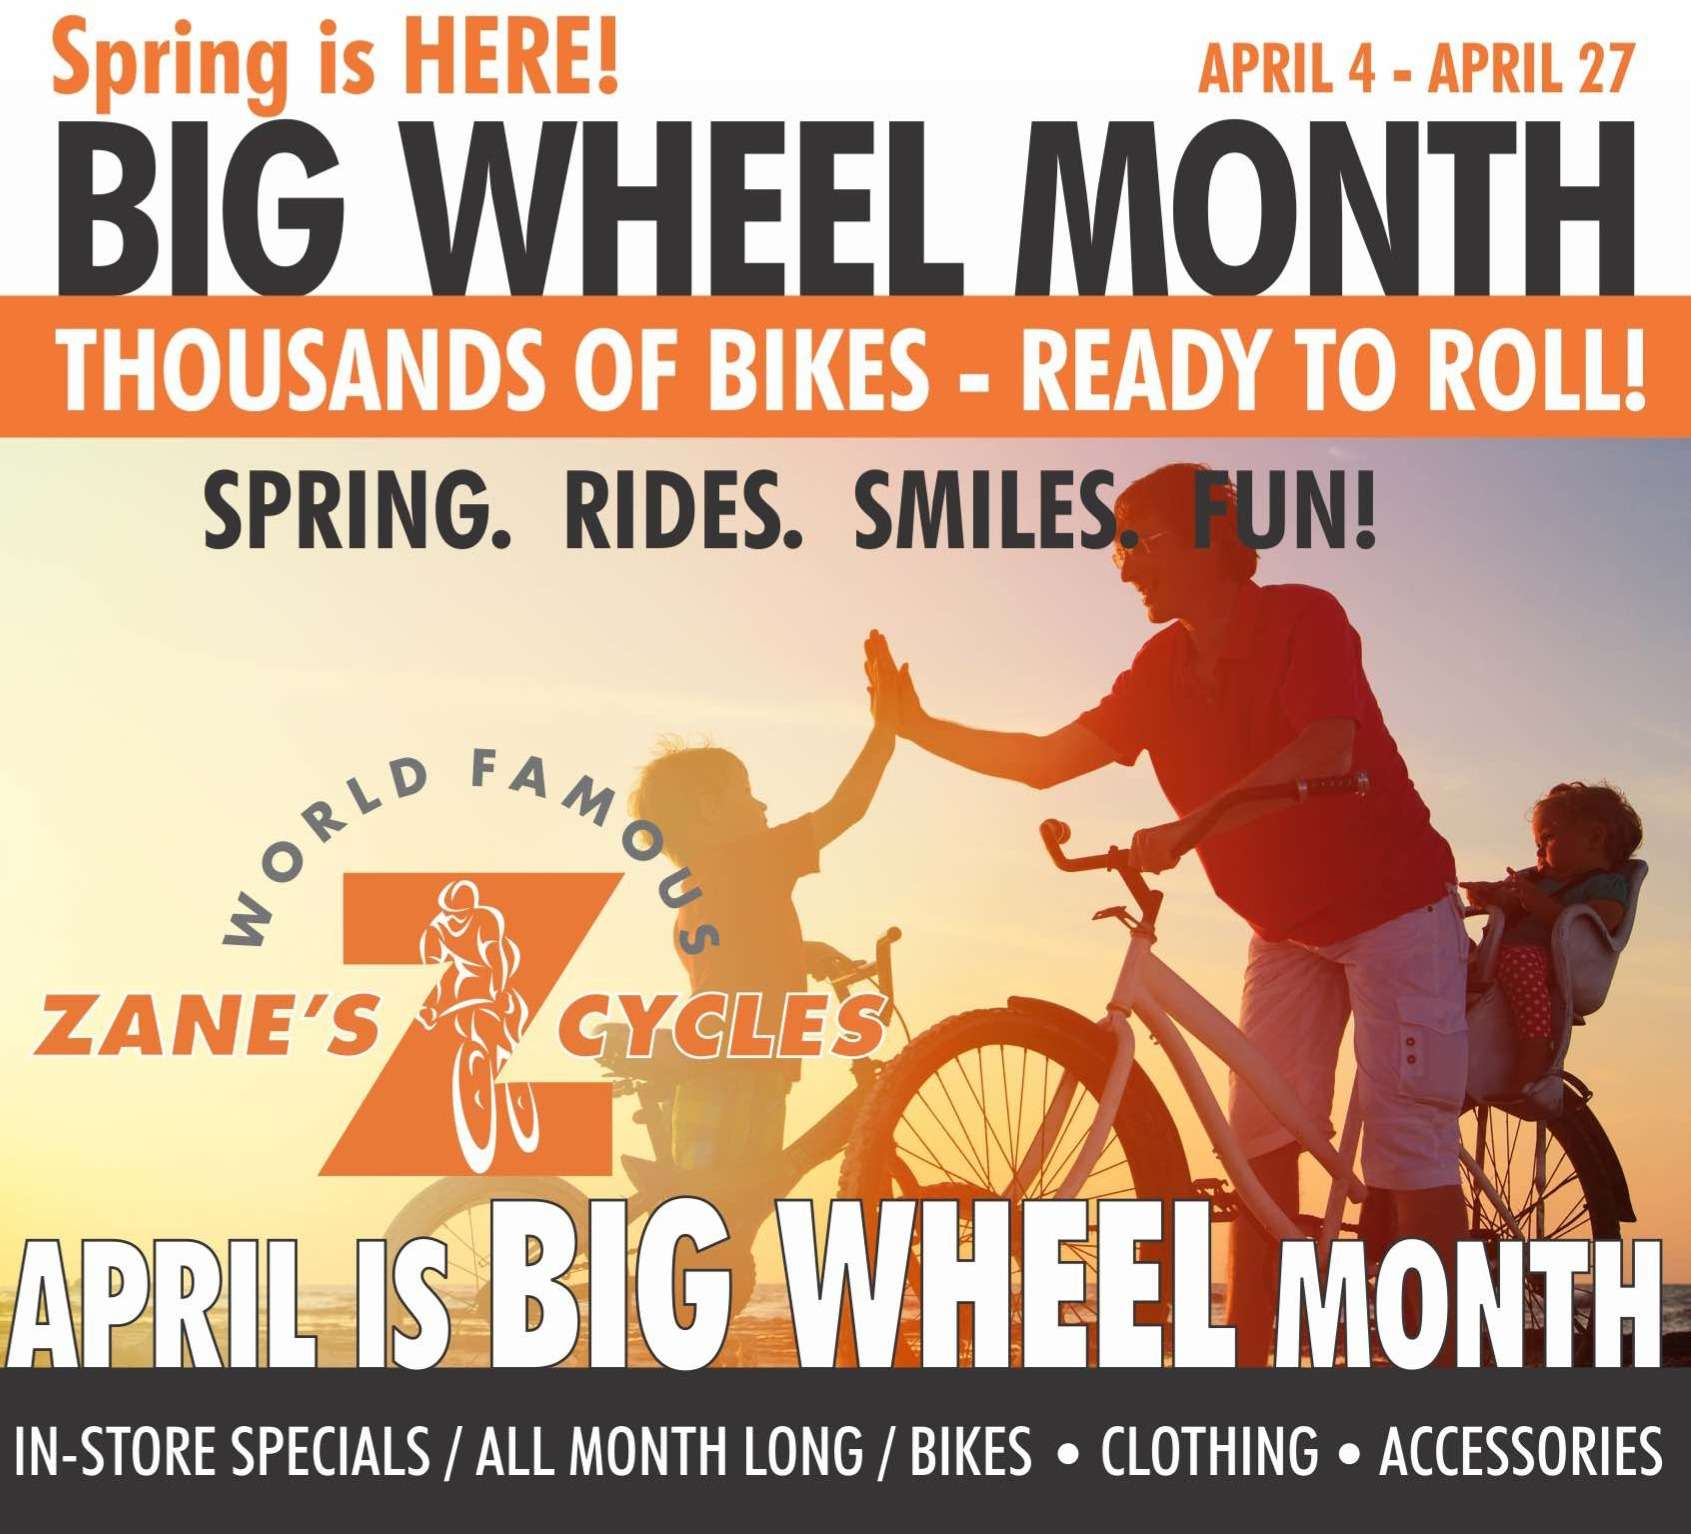 Big Wheel Month